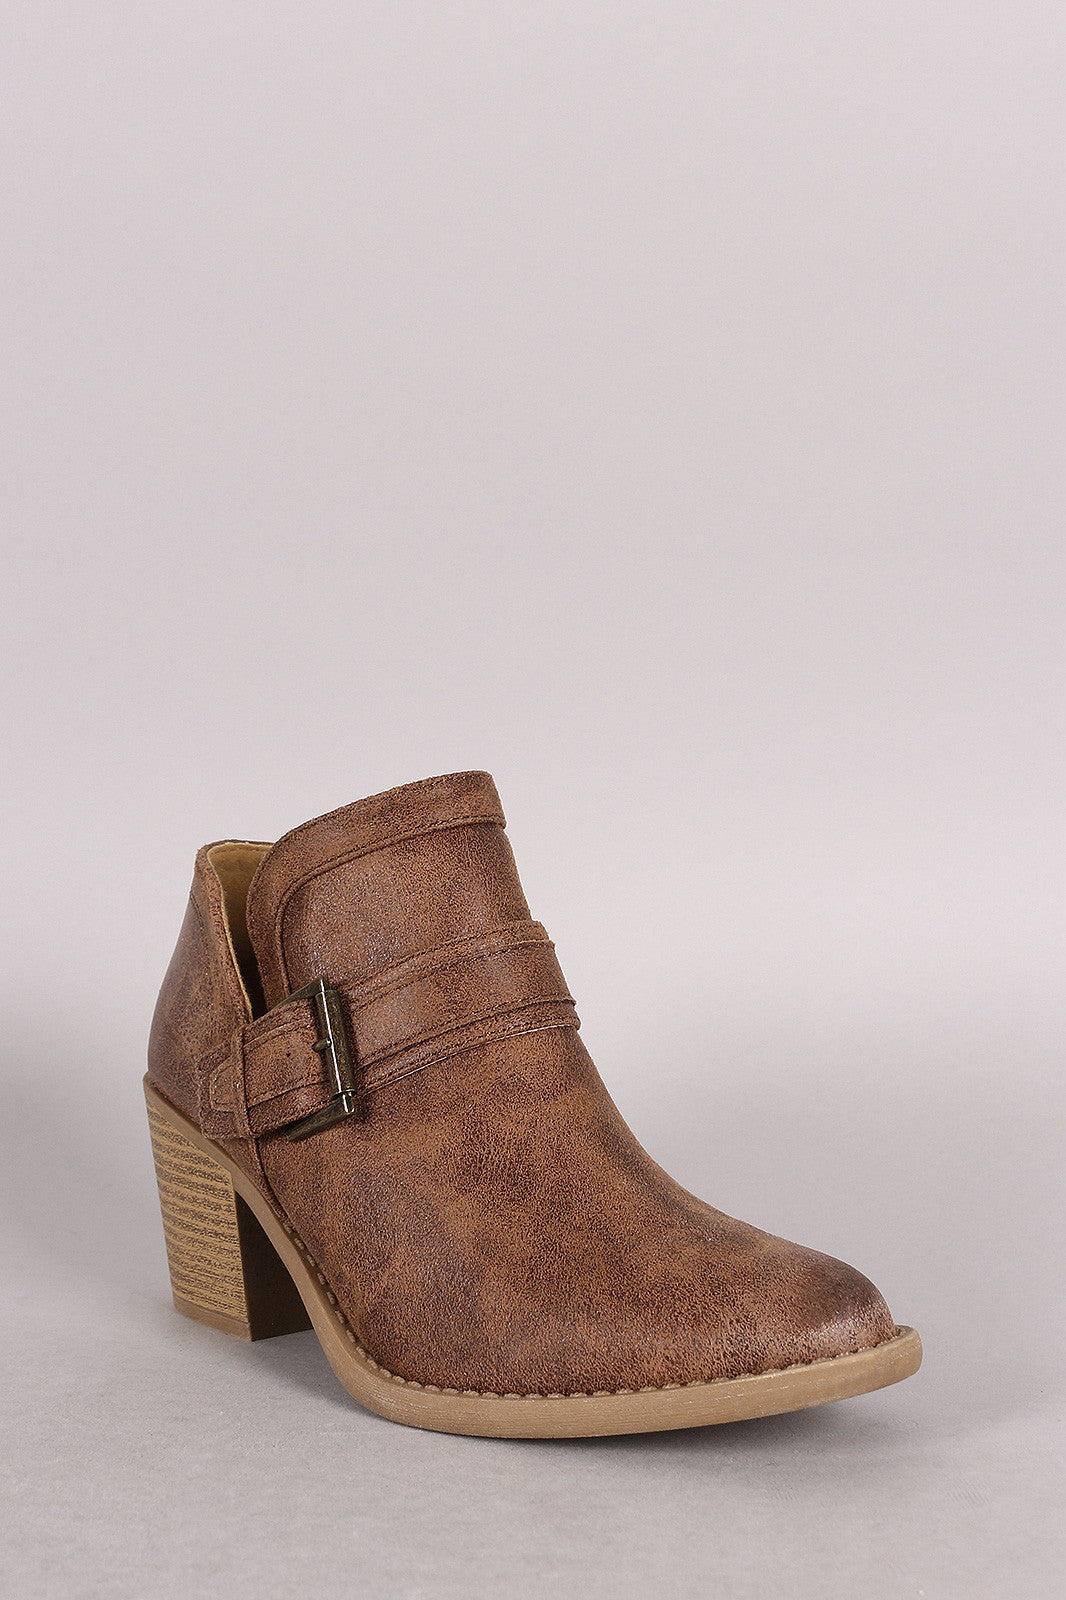 Qupid Buckled Cowgirl Chunky Heeled Booties - Thick 'N' Curvy Shop - 1